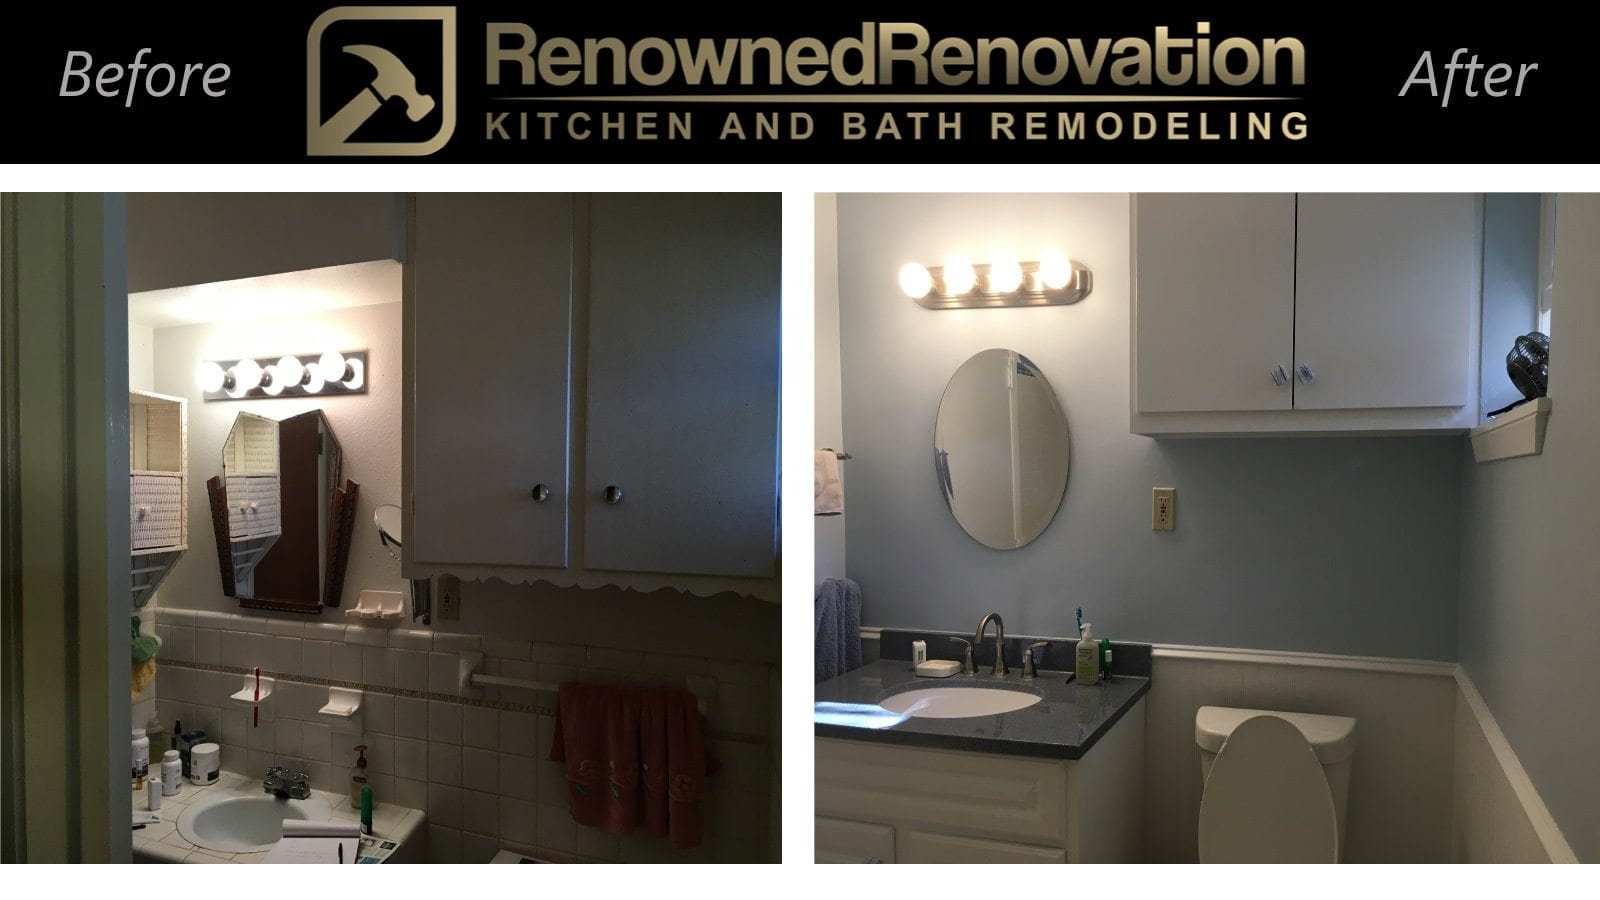 Dallas Kitchen Bathroom Remodeling By Renowned Renovation